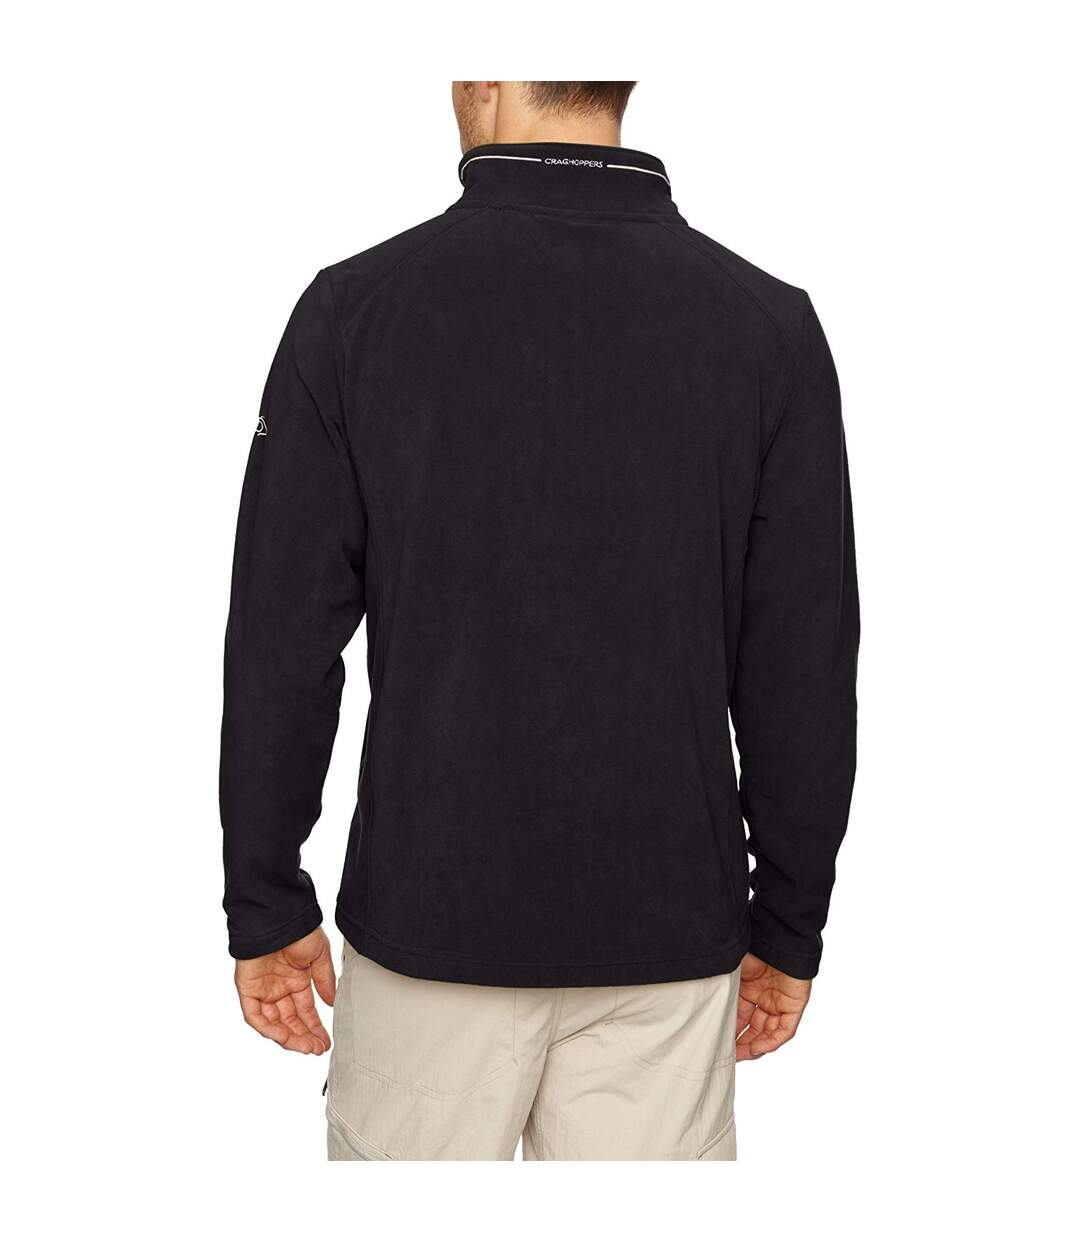 Craghoppers Corey II Lightweight Microfleece Top (Navy) - UTRW339